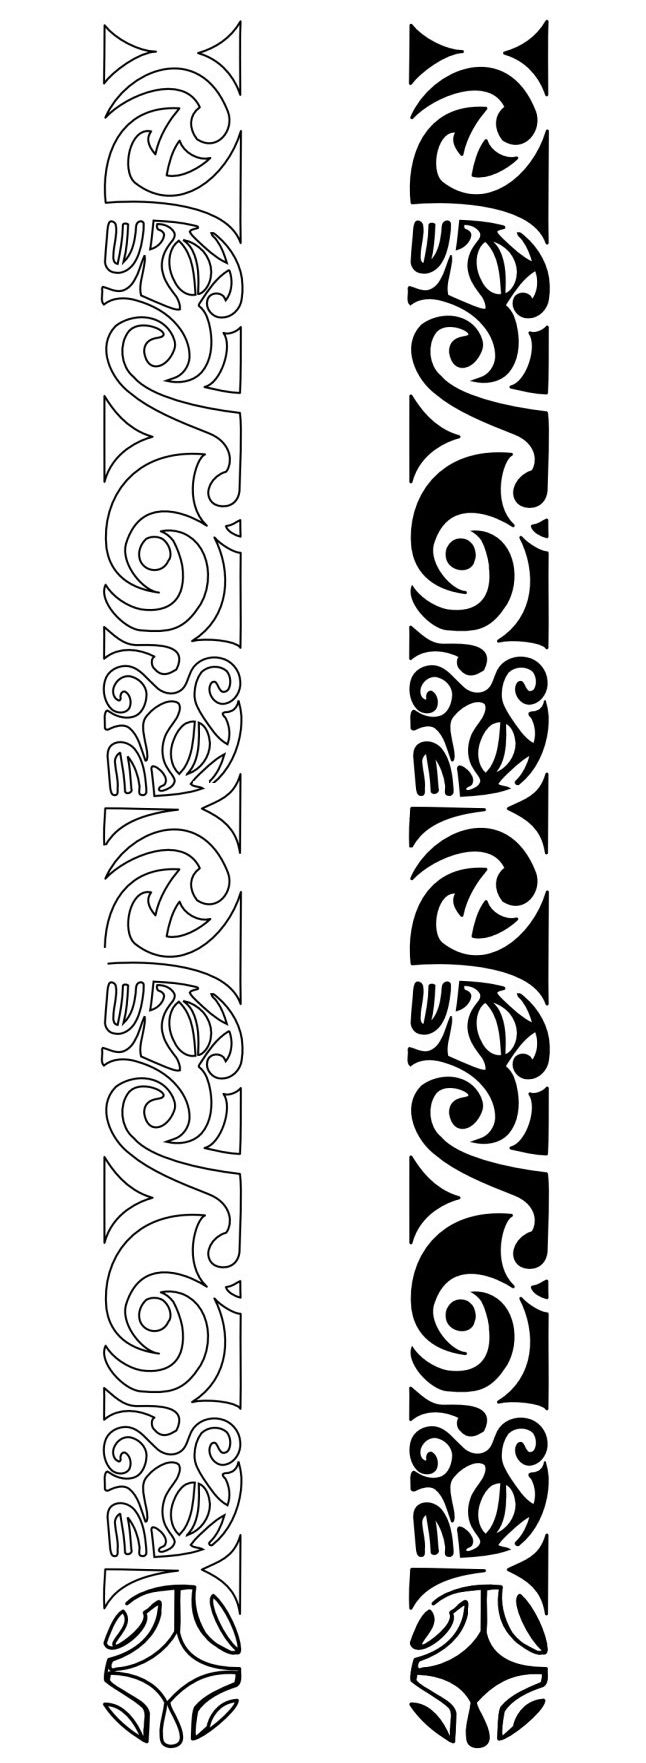 1239 best images about Maori & Polynesian on Pinterest